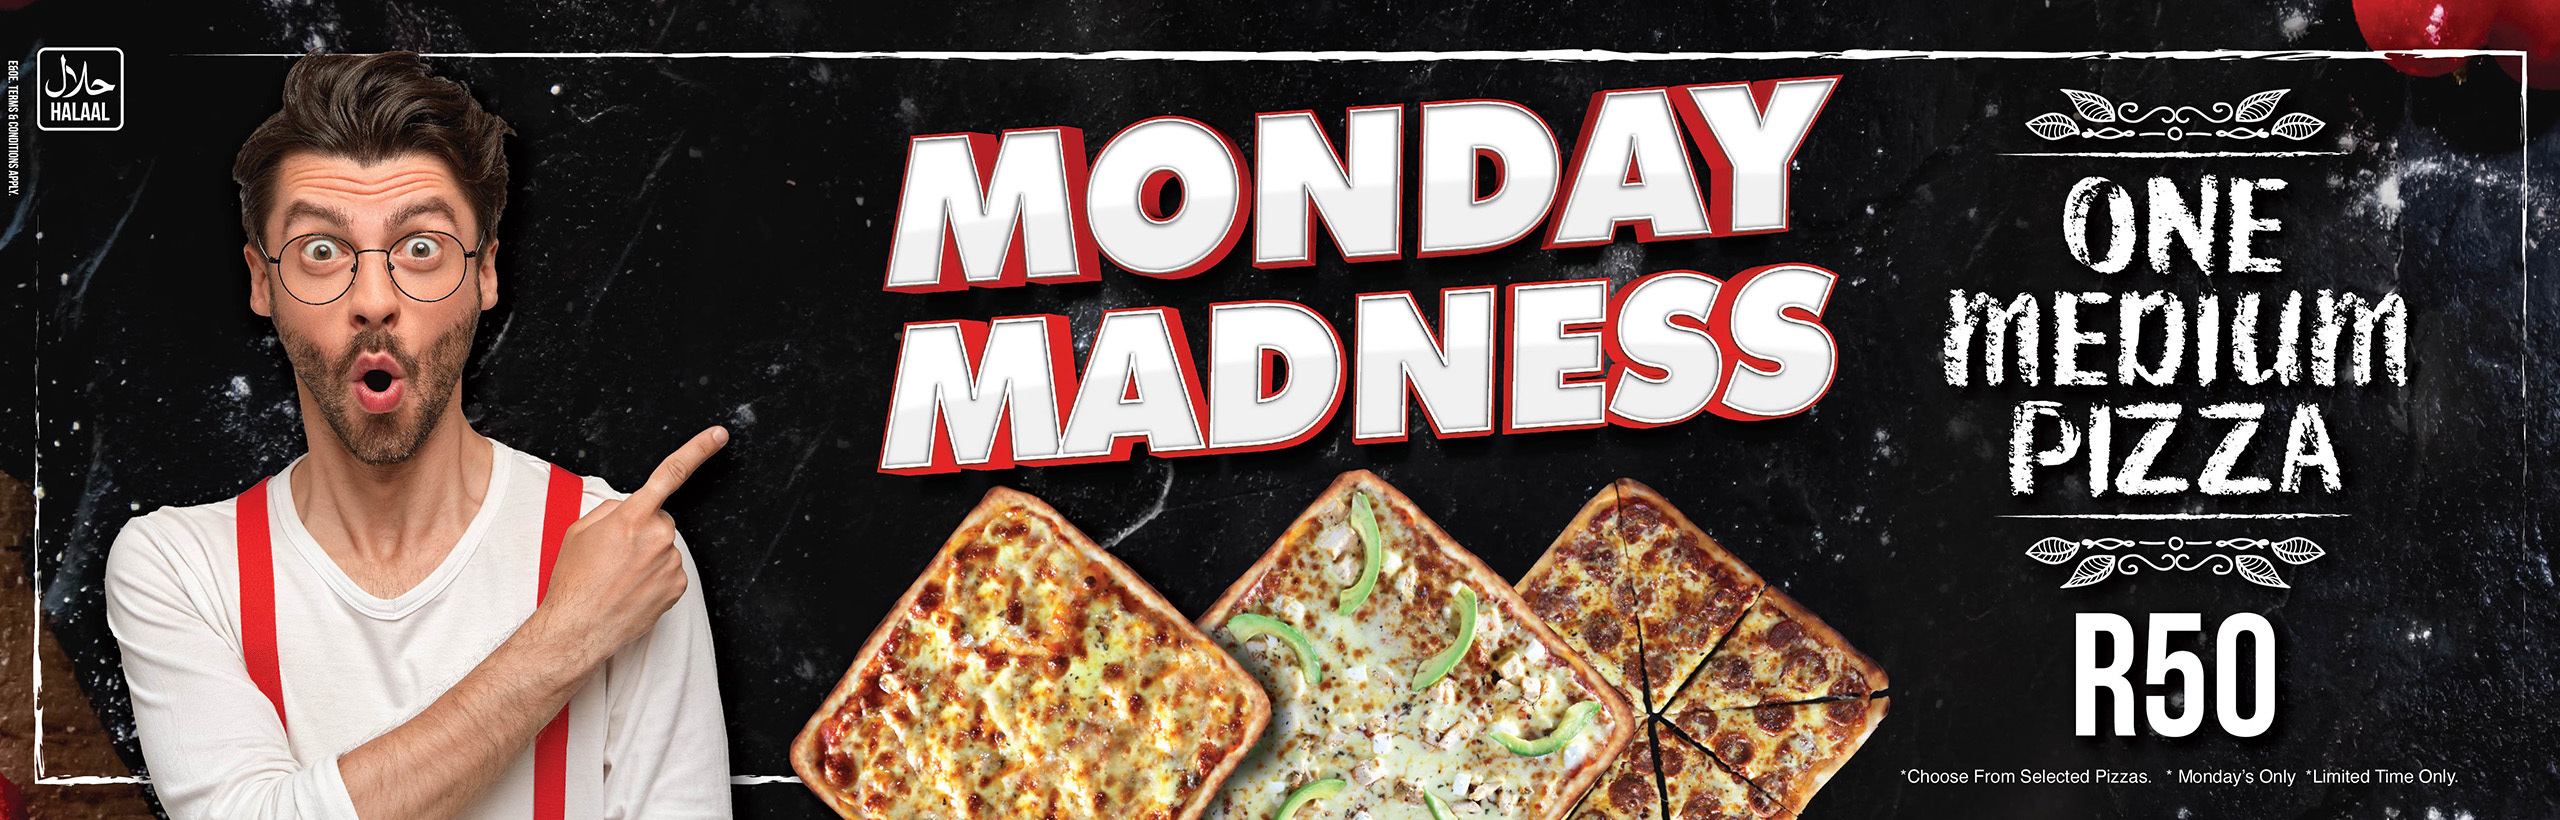 Monday Madness Website banner_02_Halaal